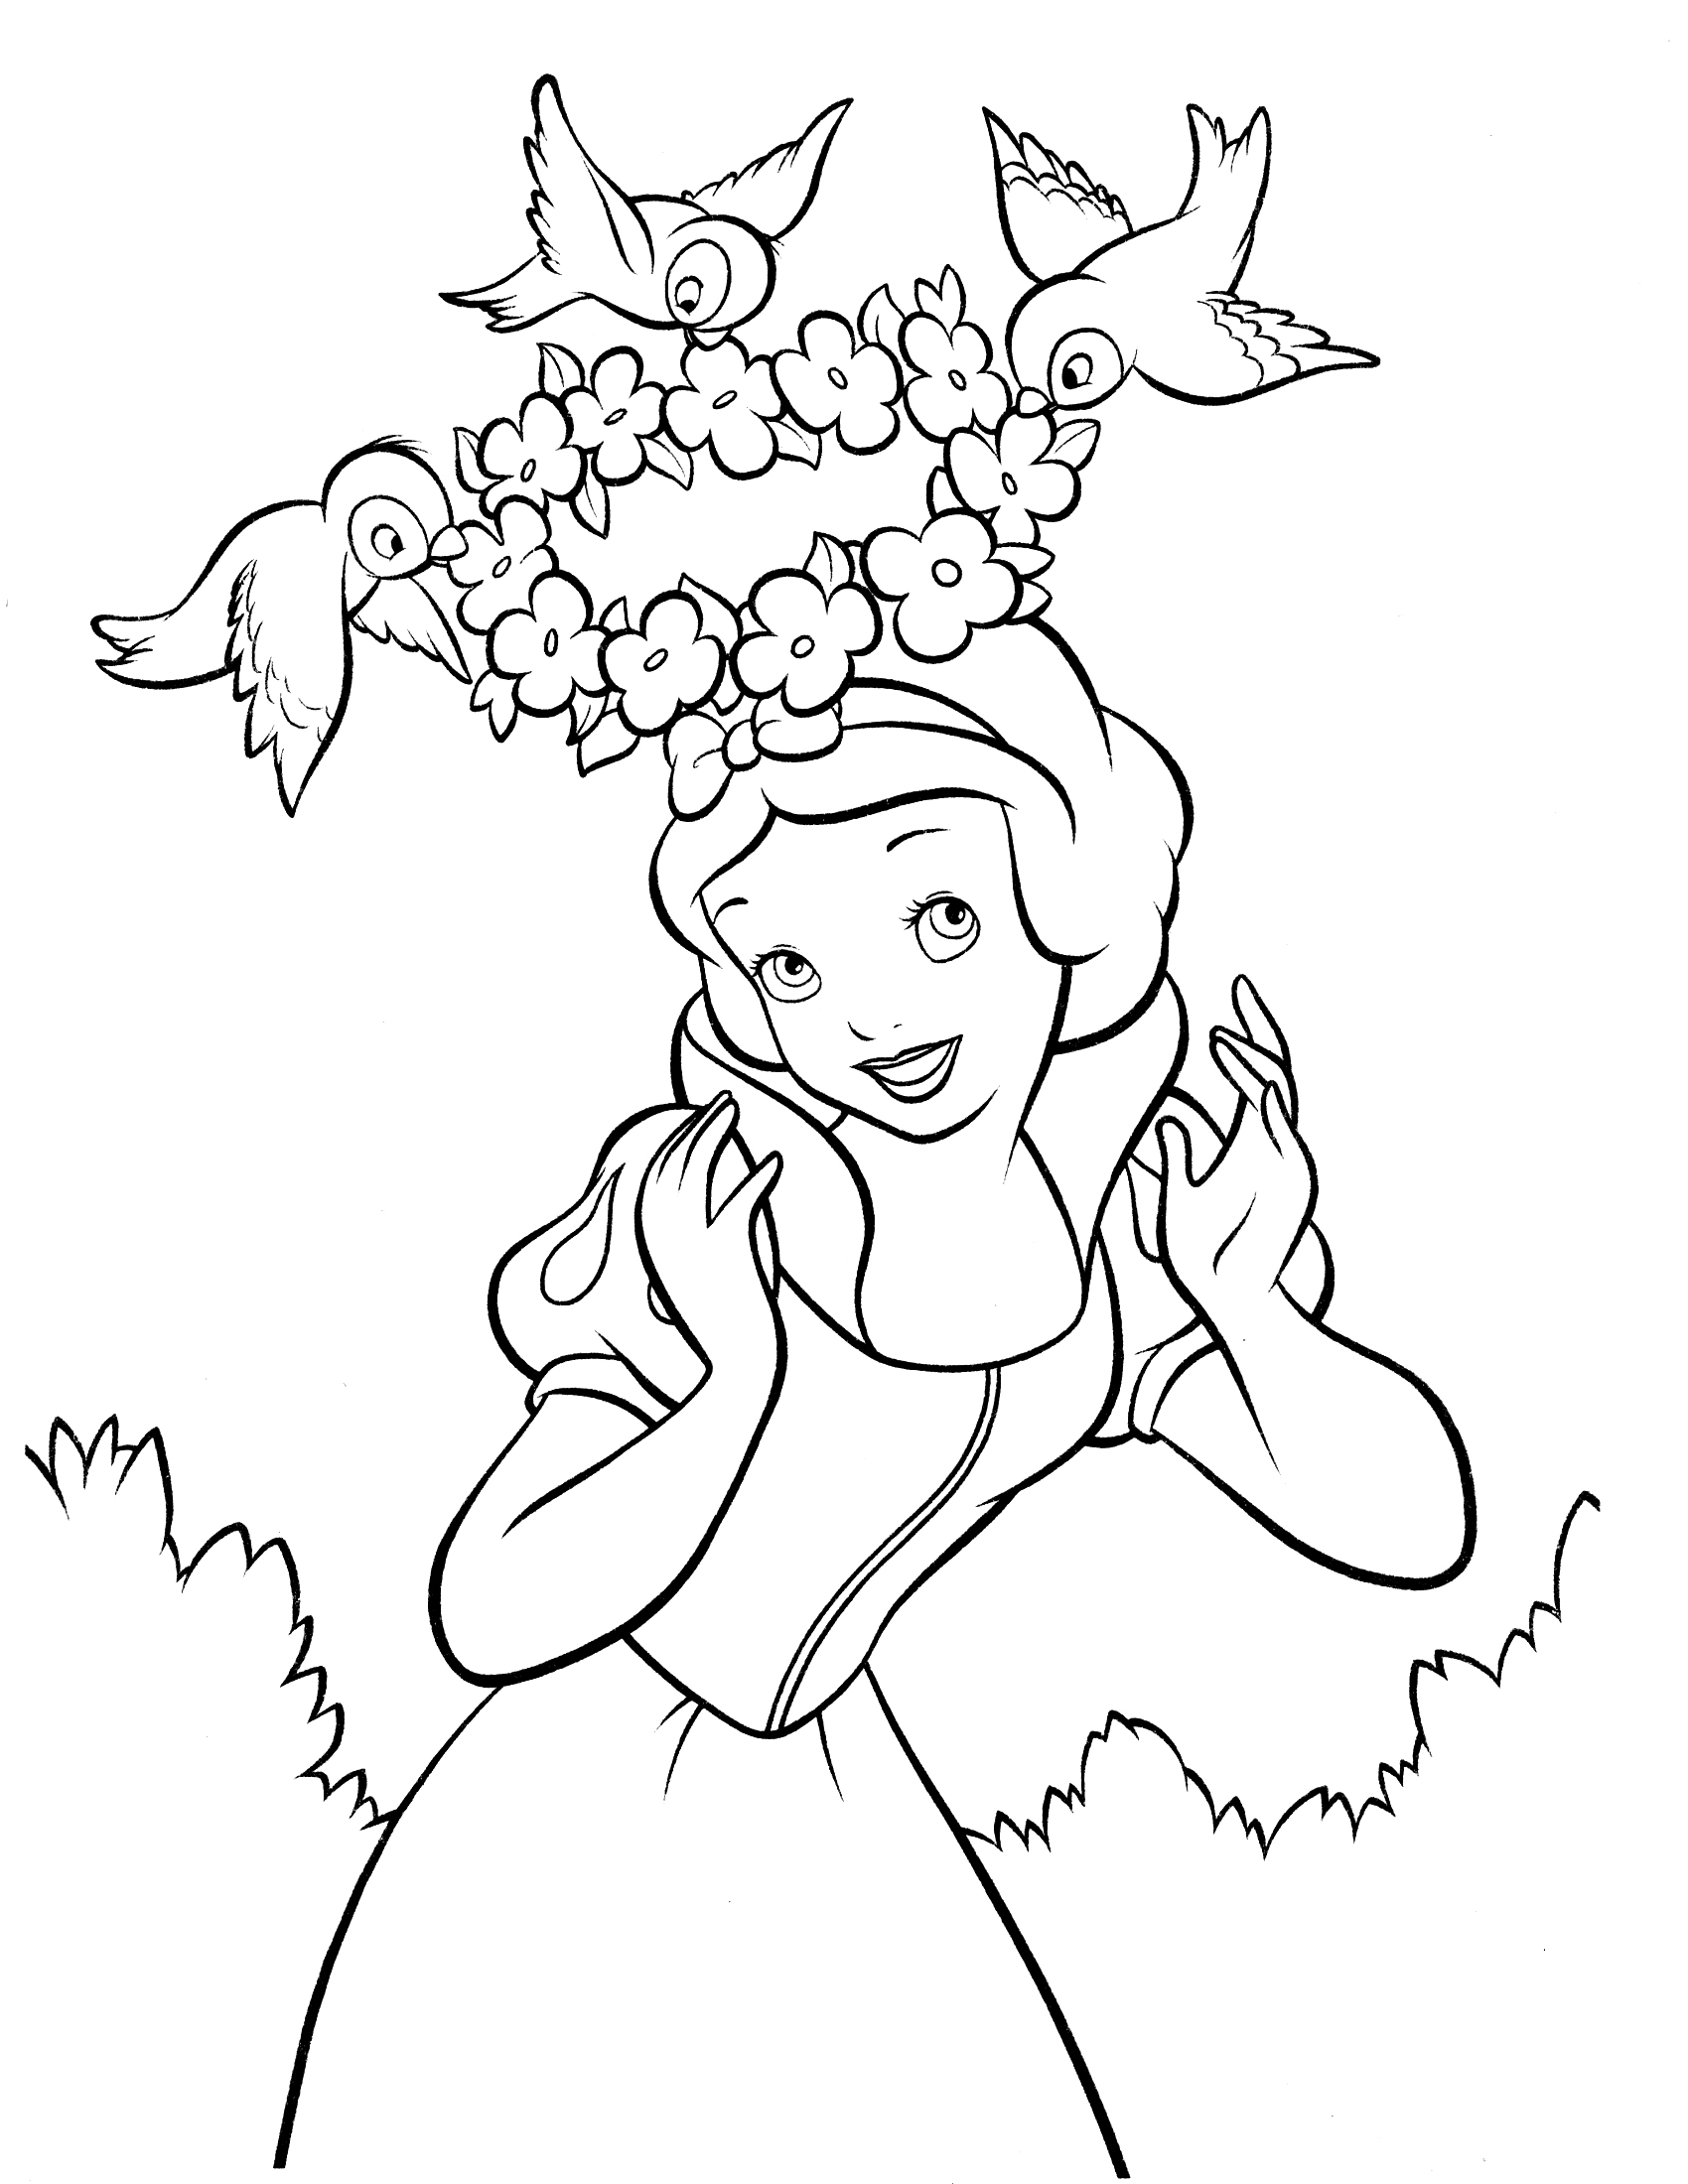 1700x2200 snow white and the seven dwarfs coloring pages finest disney snow